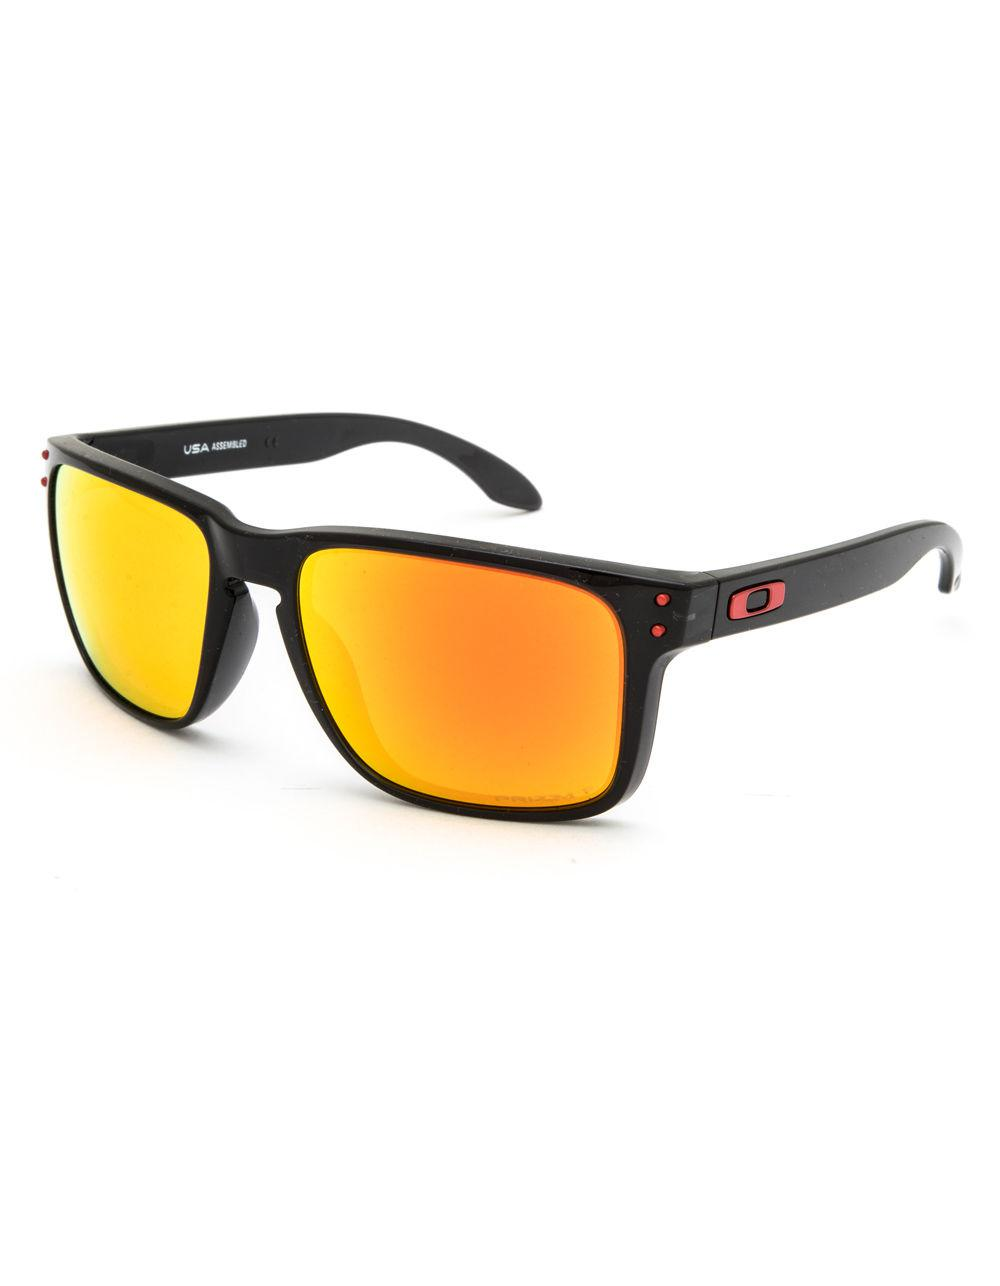 9c74ff6a71 Lyst - Oakley Holbrook Xl Black   Red Sunglasses in Black for Men